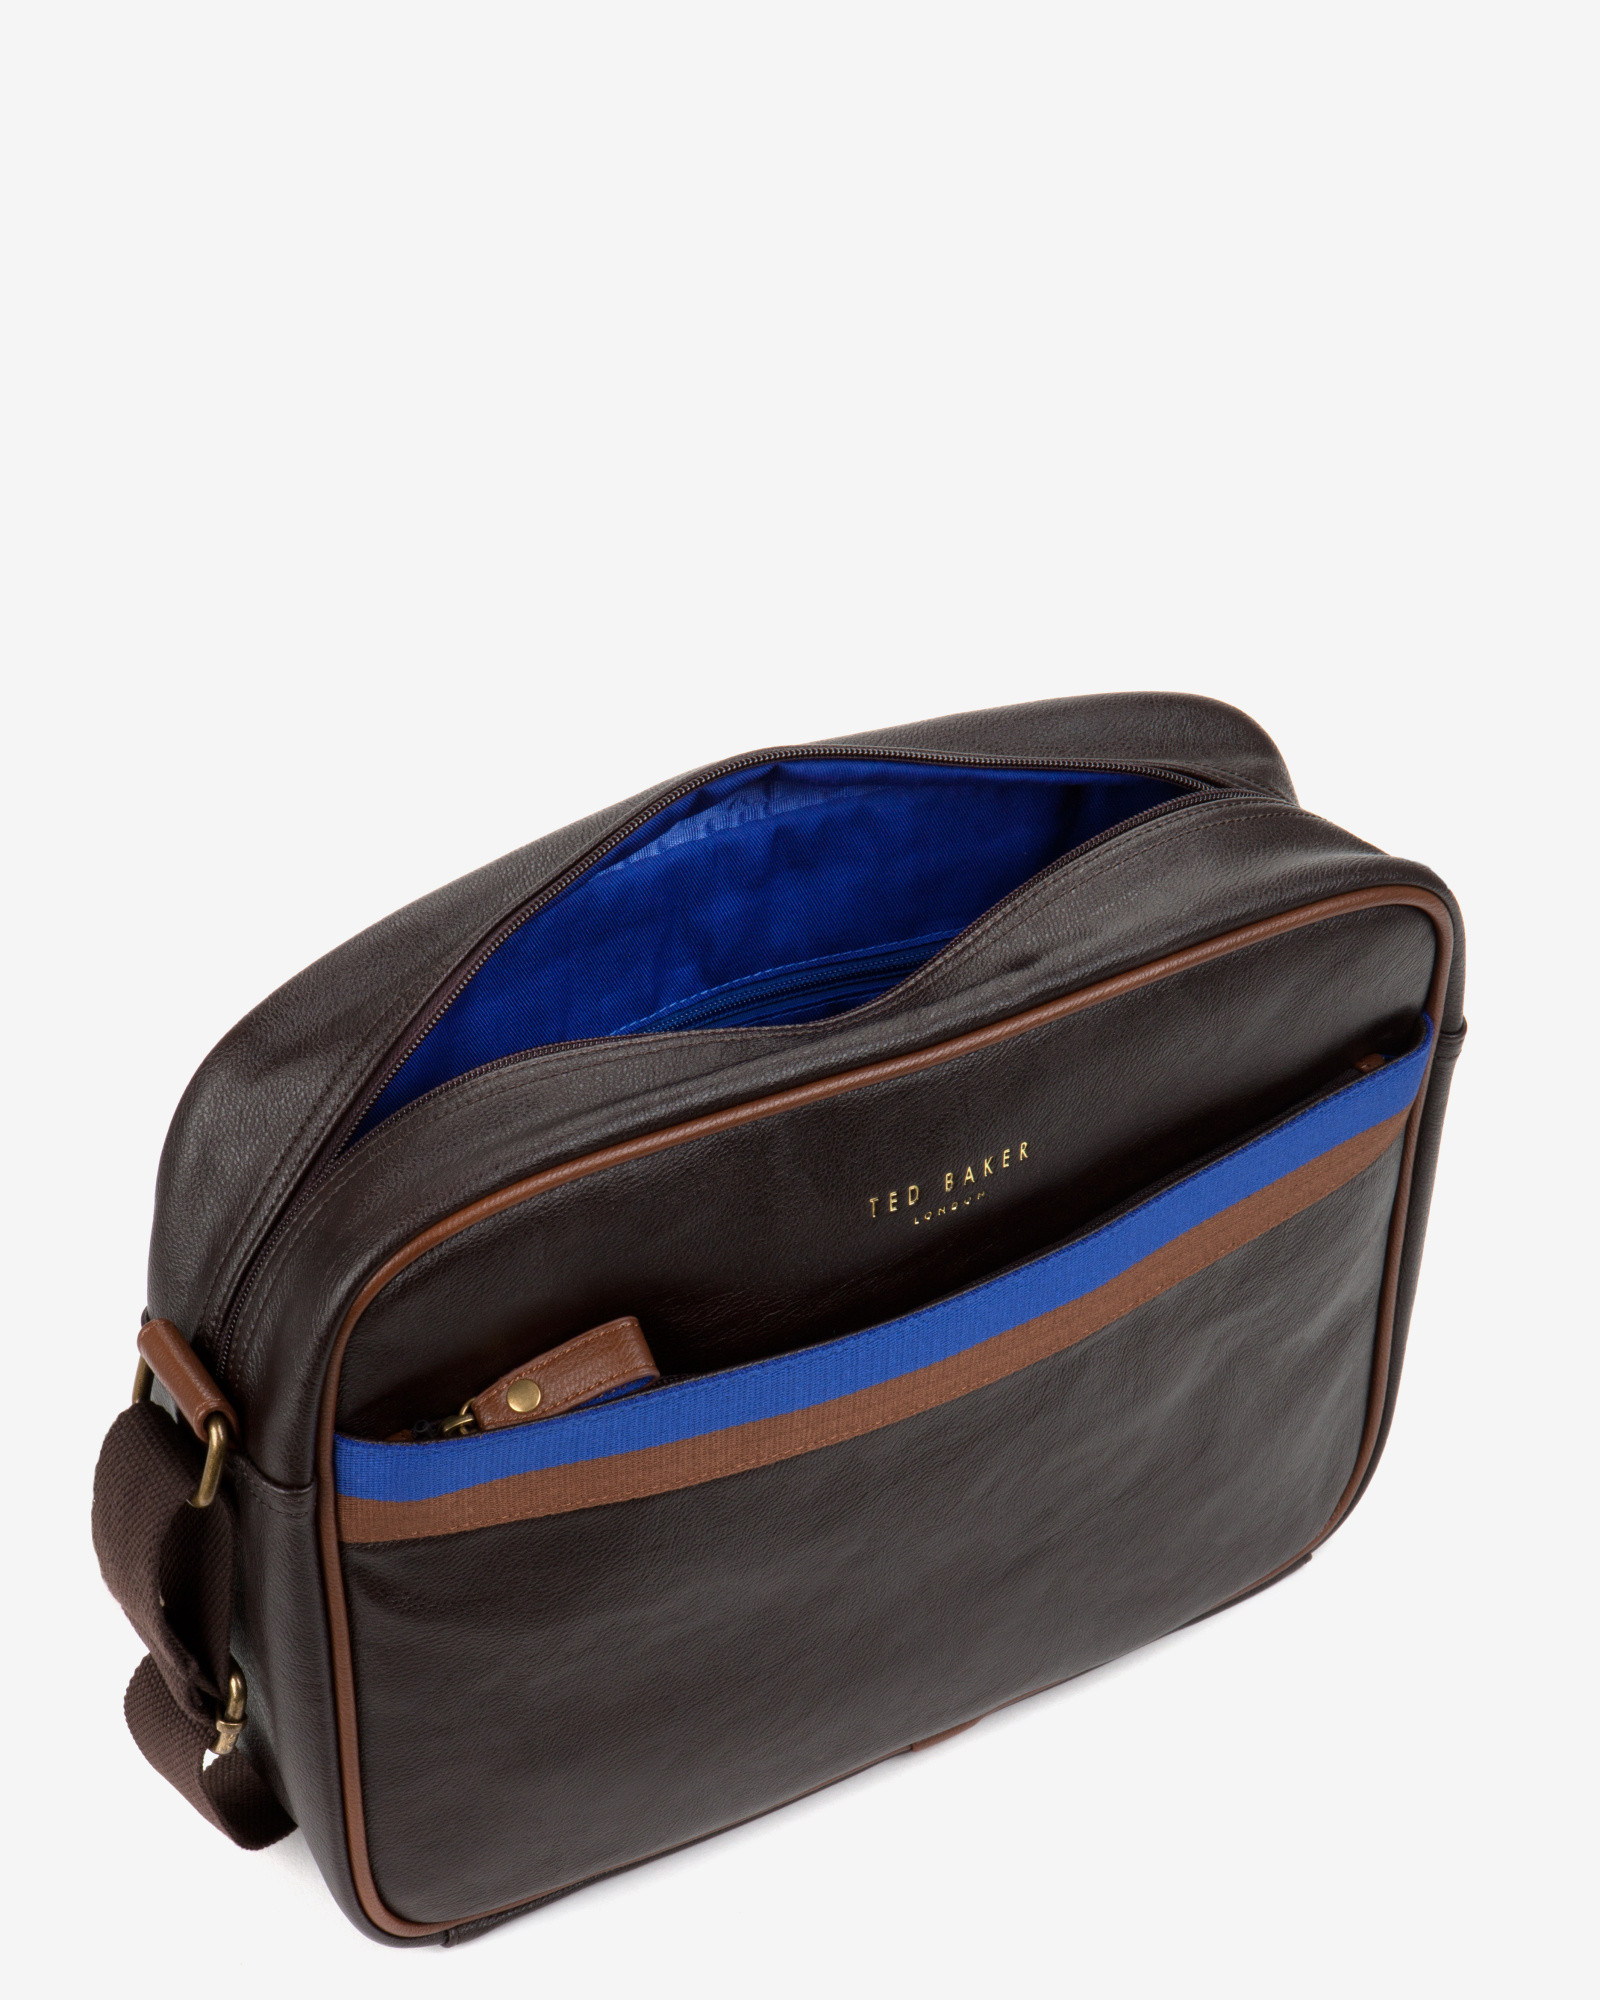 Ted Baker Cross Body Document Bag in Brown for Men - Lyst 1a662bd6515b5